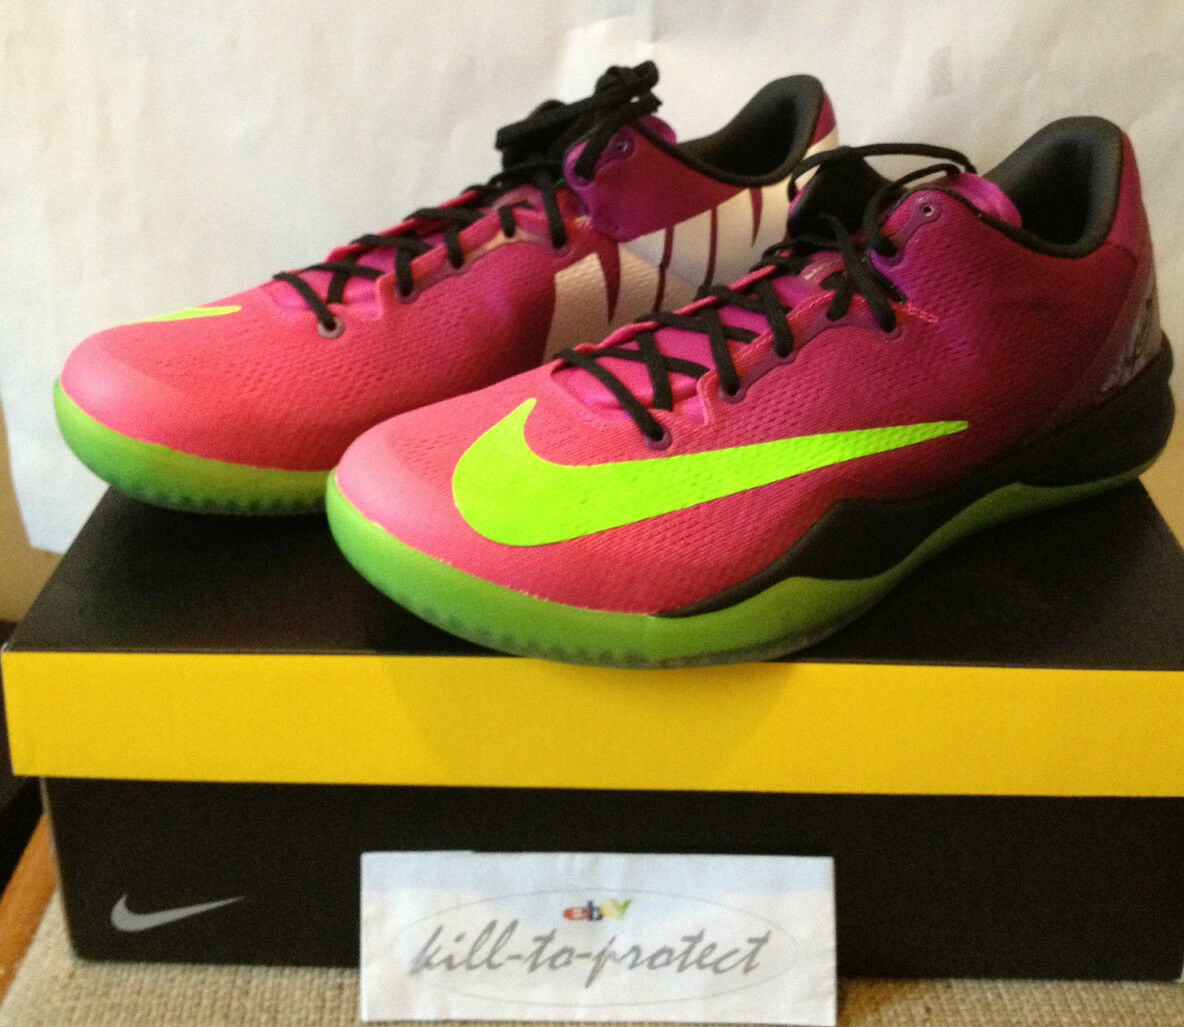 NIKE KOBE 8 MC MAMBACURIAL Sz US7 8 9 10 11 12 13 Galaxy 615315-500 BHM